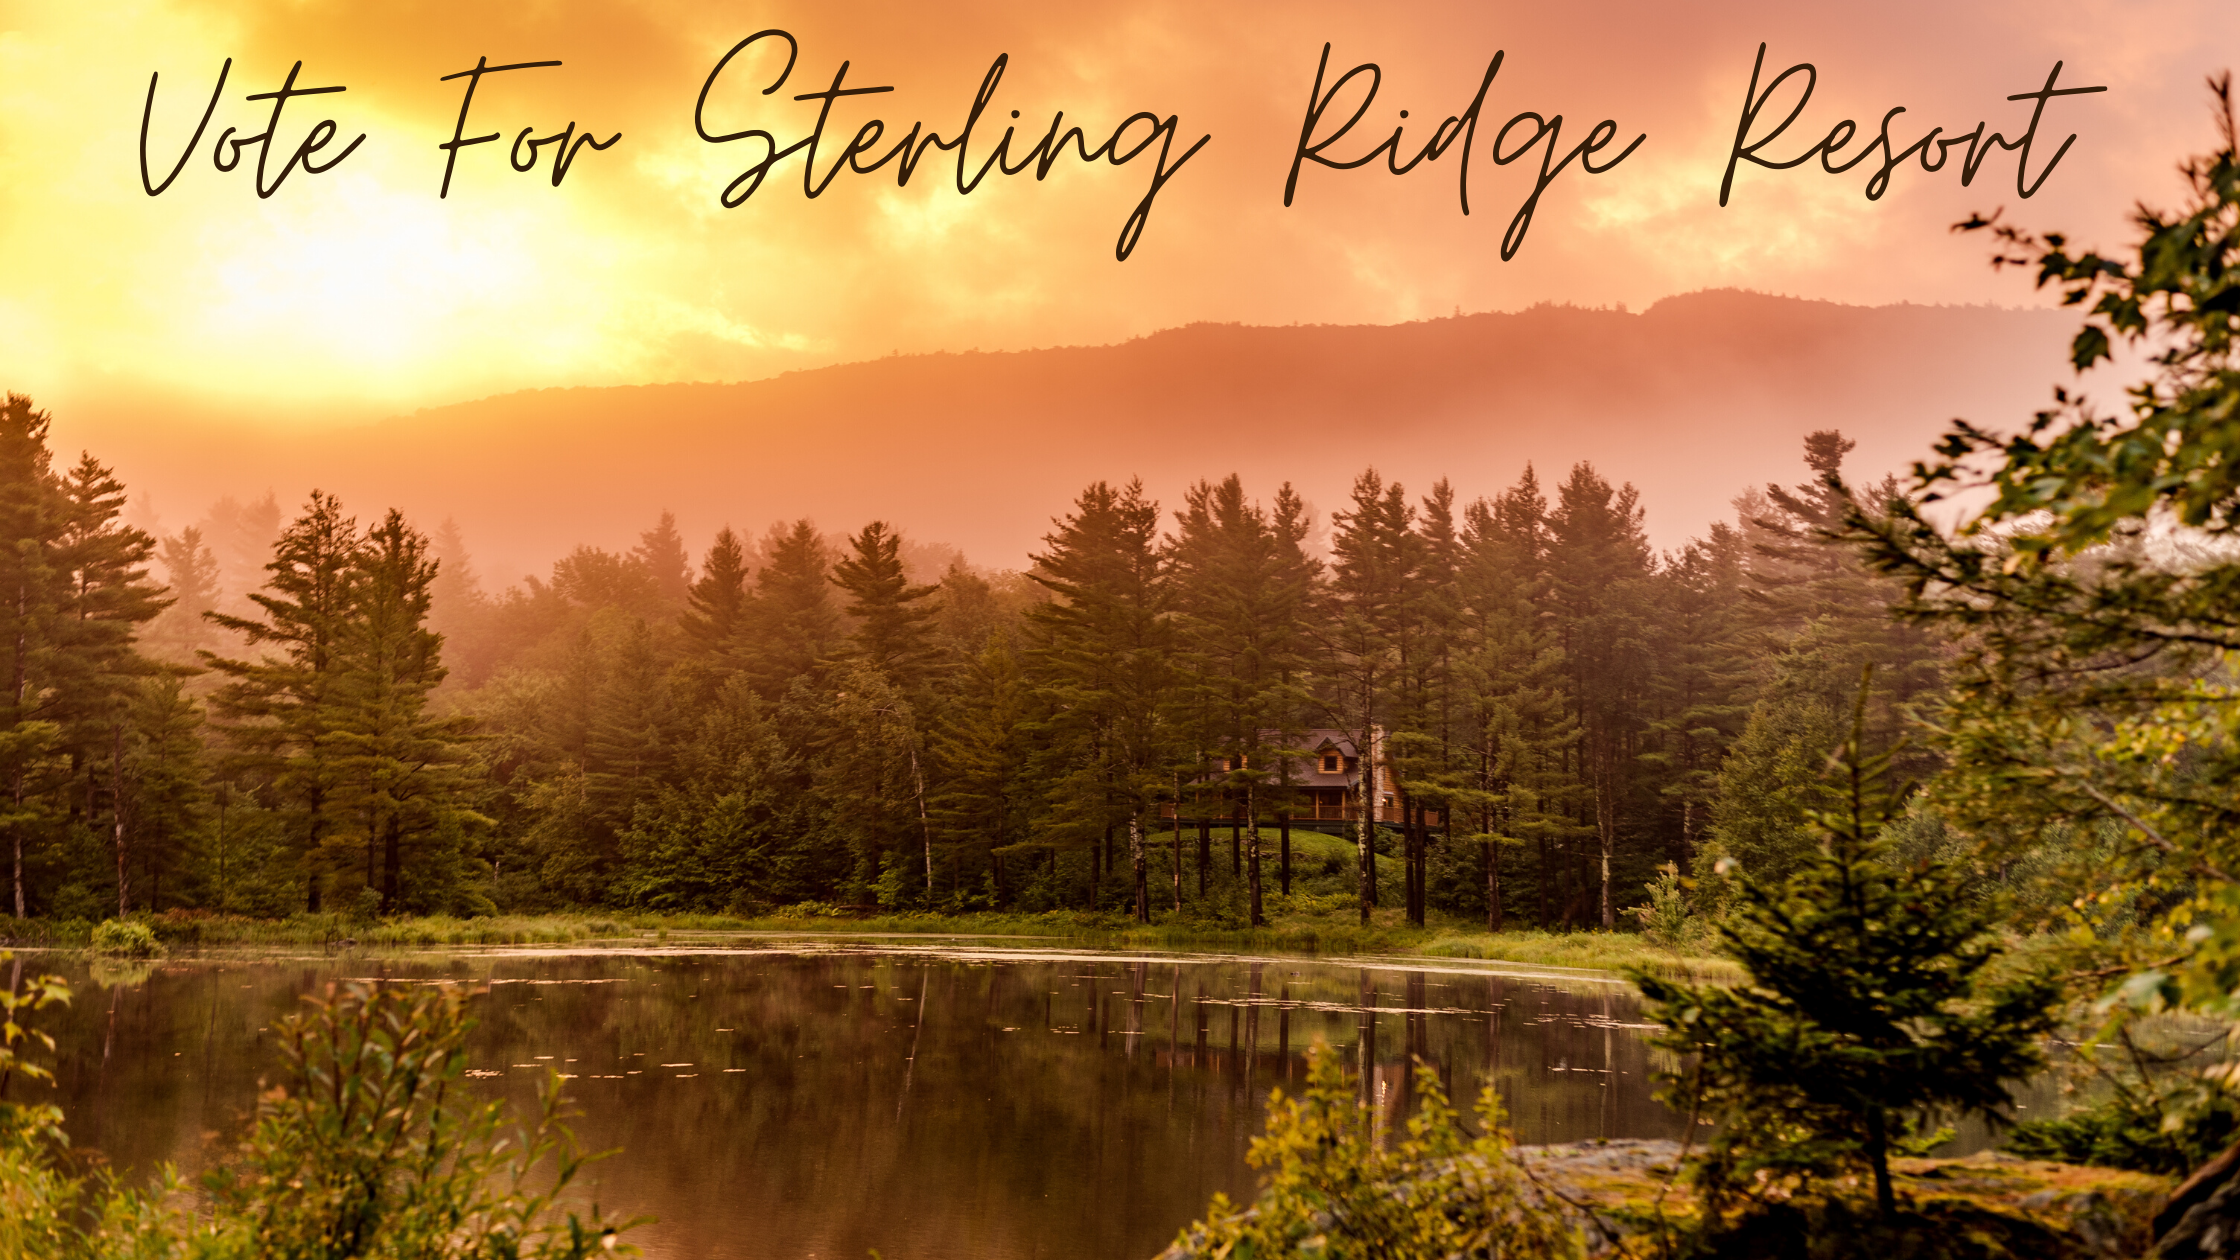 Vote for Sterling Ridge Resort top Vermont escapes